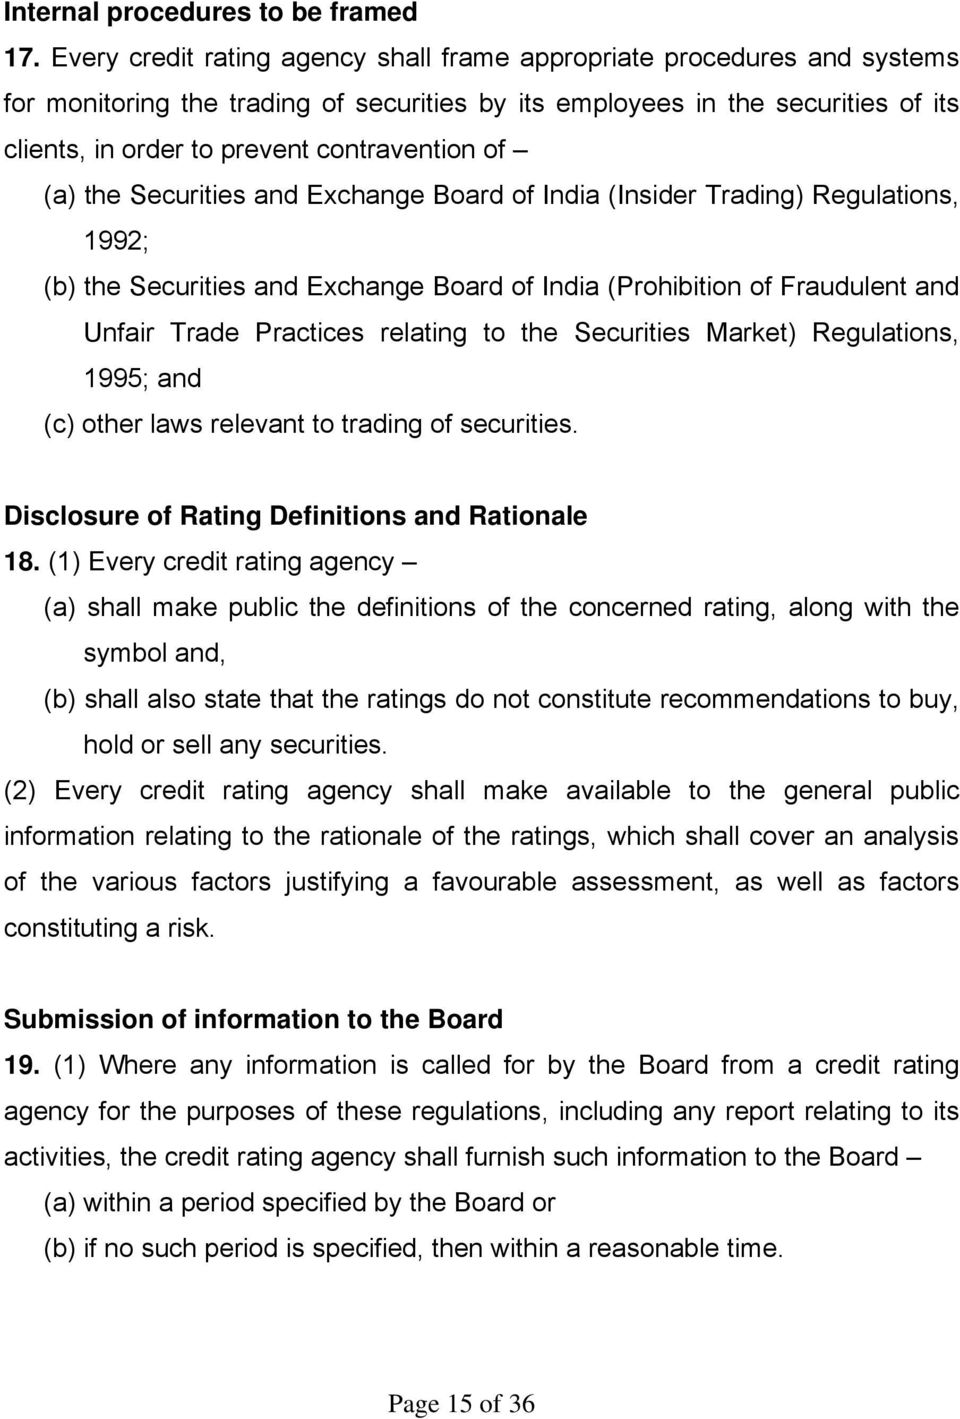 of (a) the Securities and Exchange Board of India (Insider Trading) Regulations, 1992; (b) the Securities and Exchange Board of India (Prohibition of Fraudulent and Unfair Trade Practices relating to